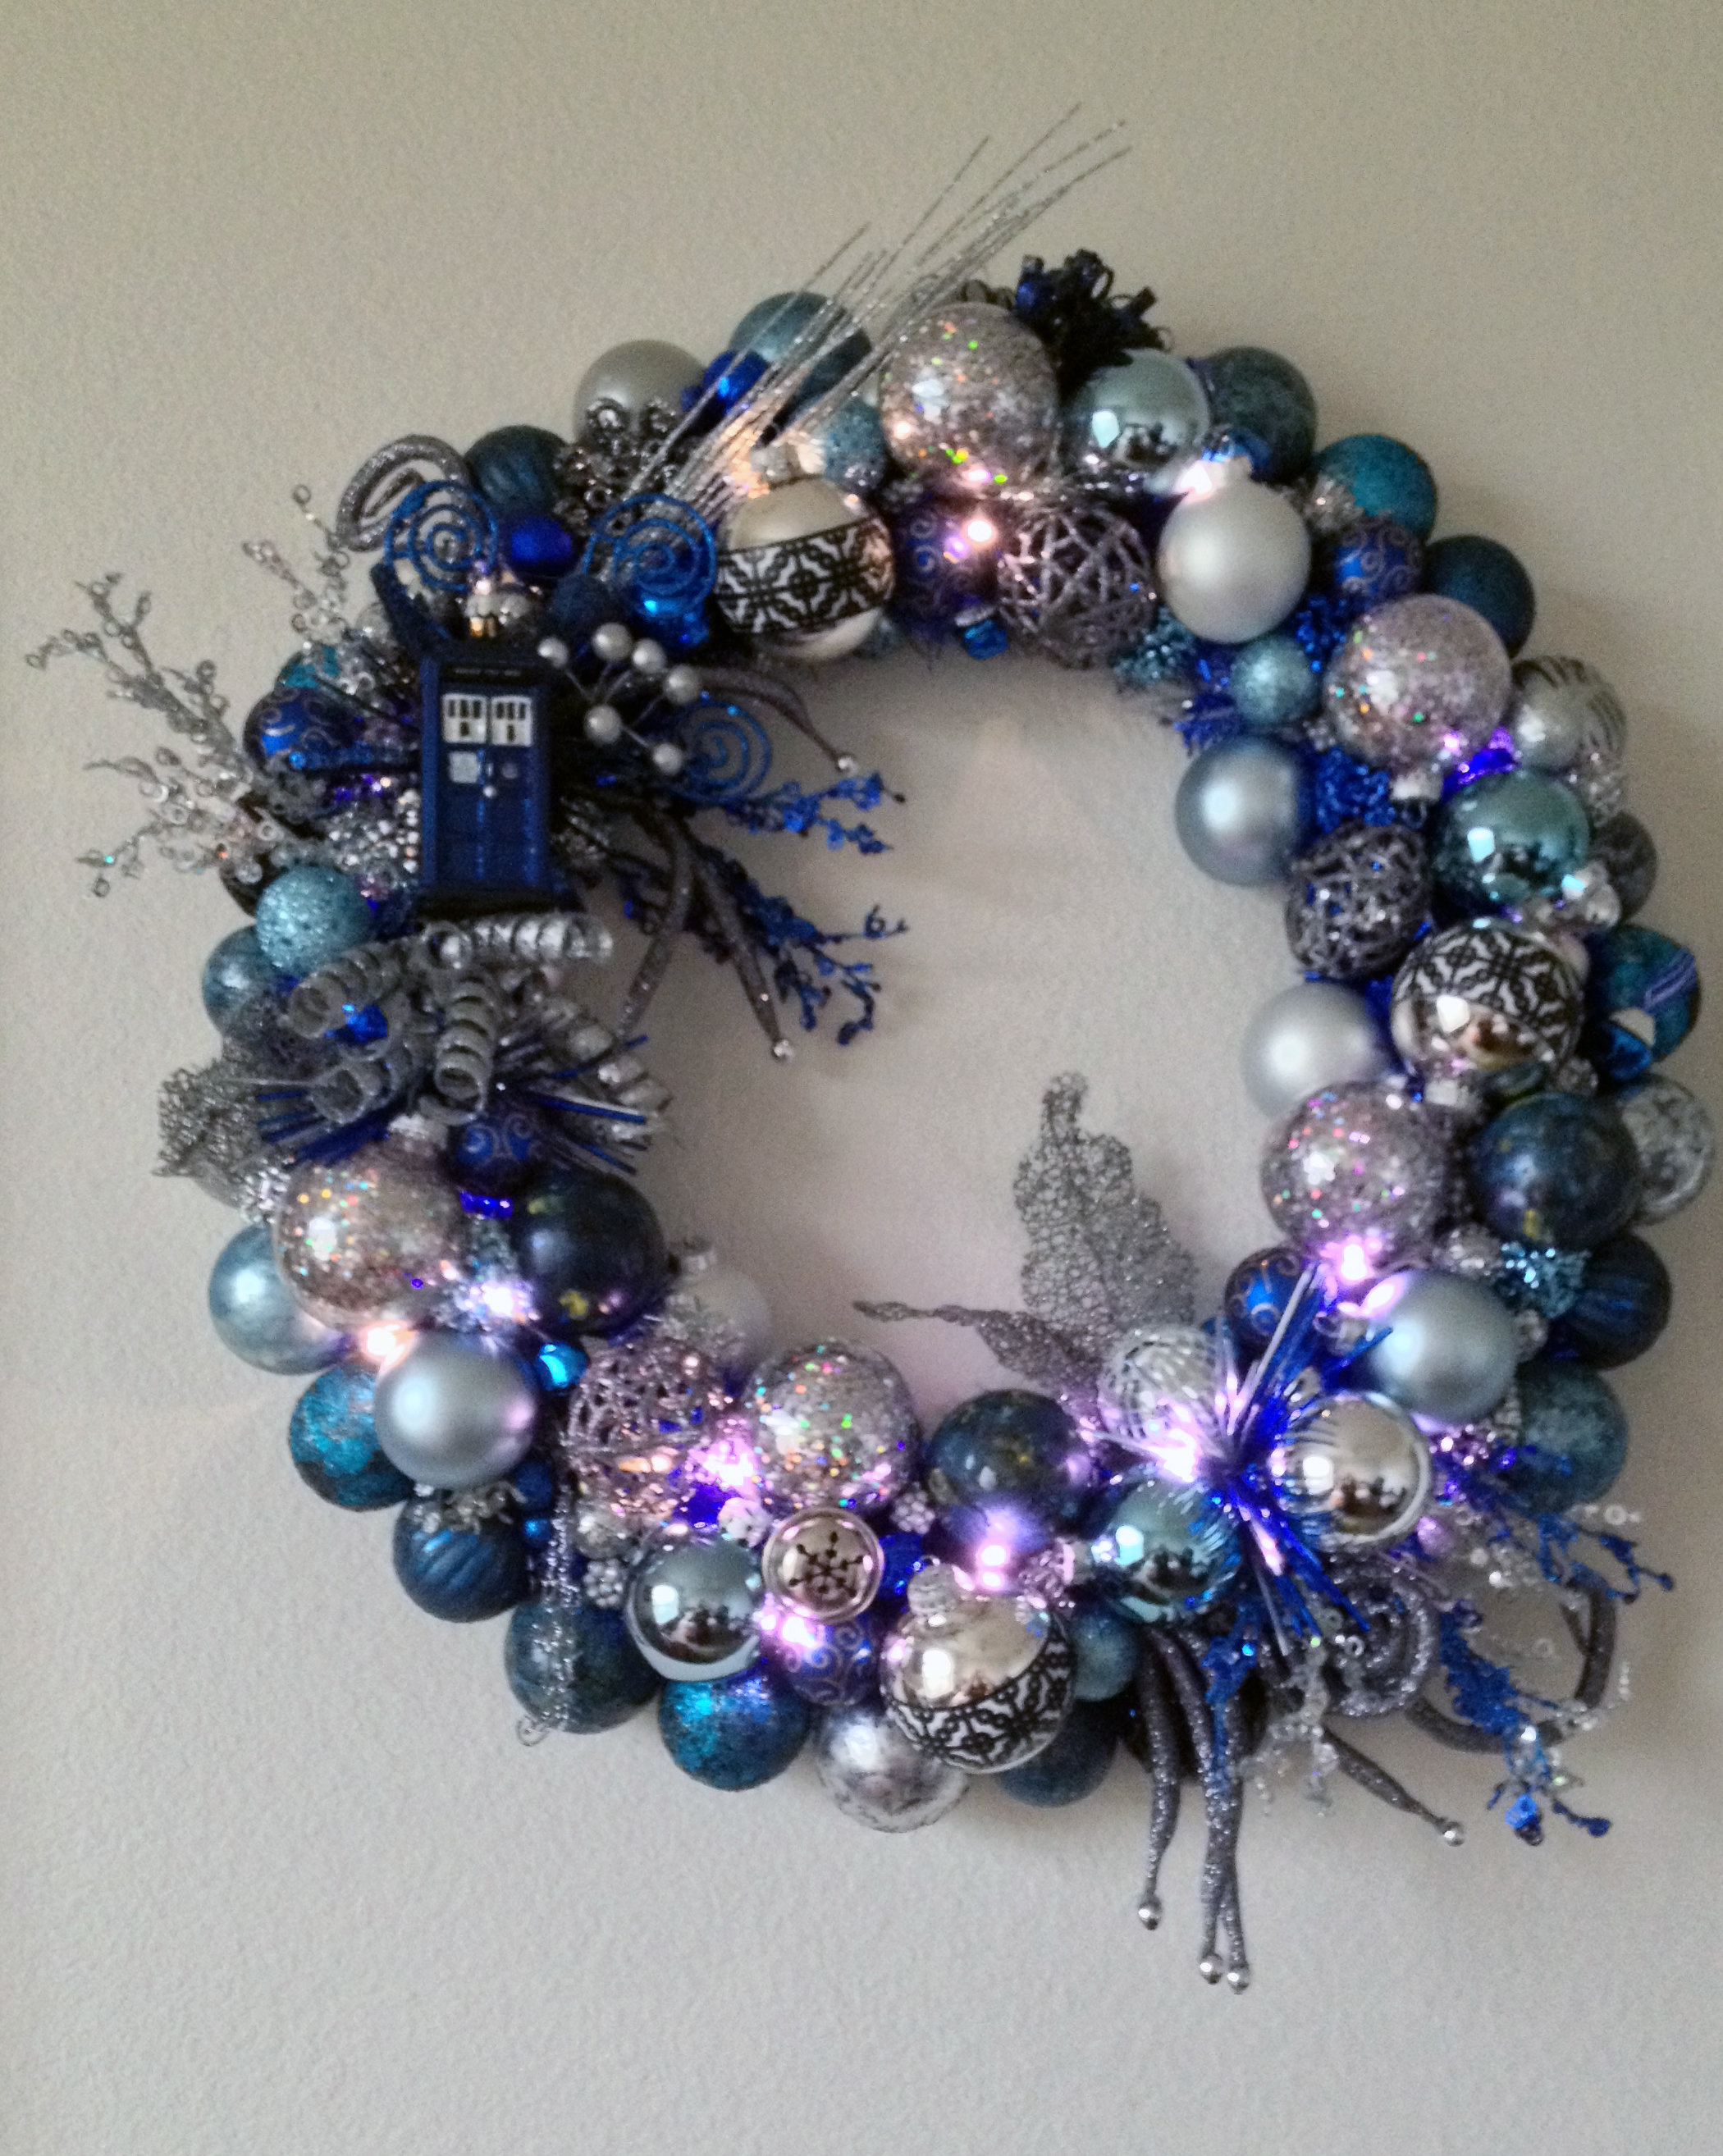 Picture of Lighted Tardis Ornament Wreath